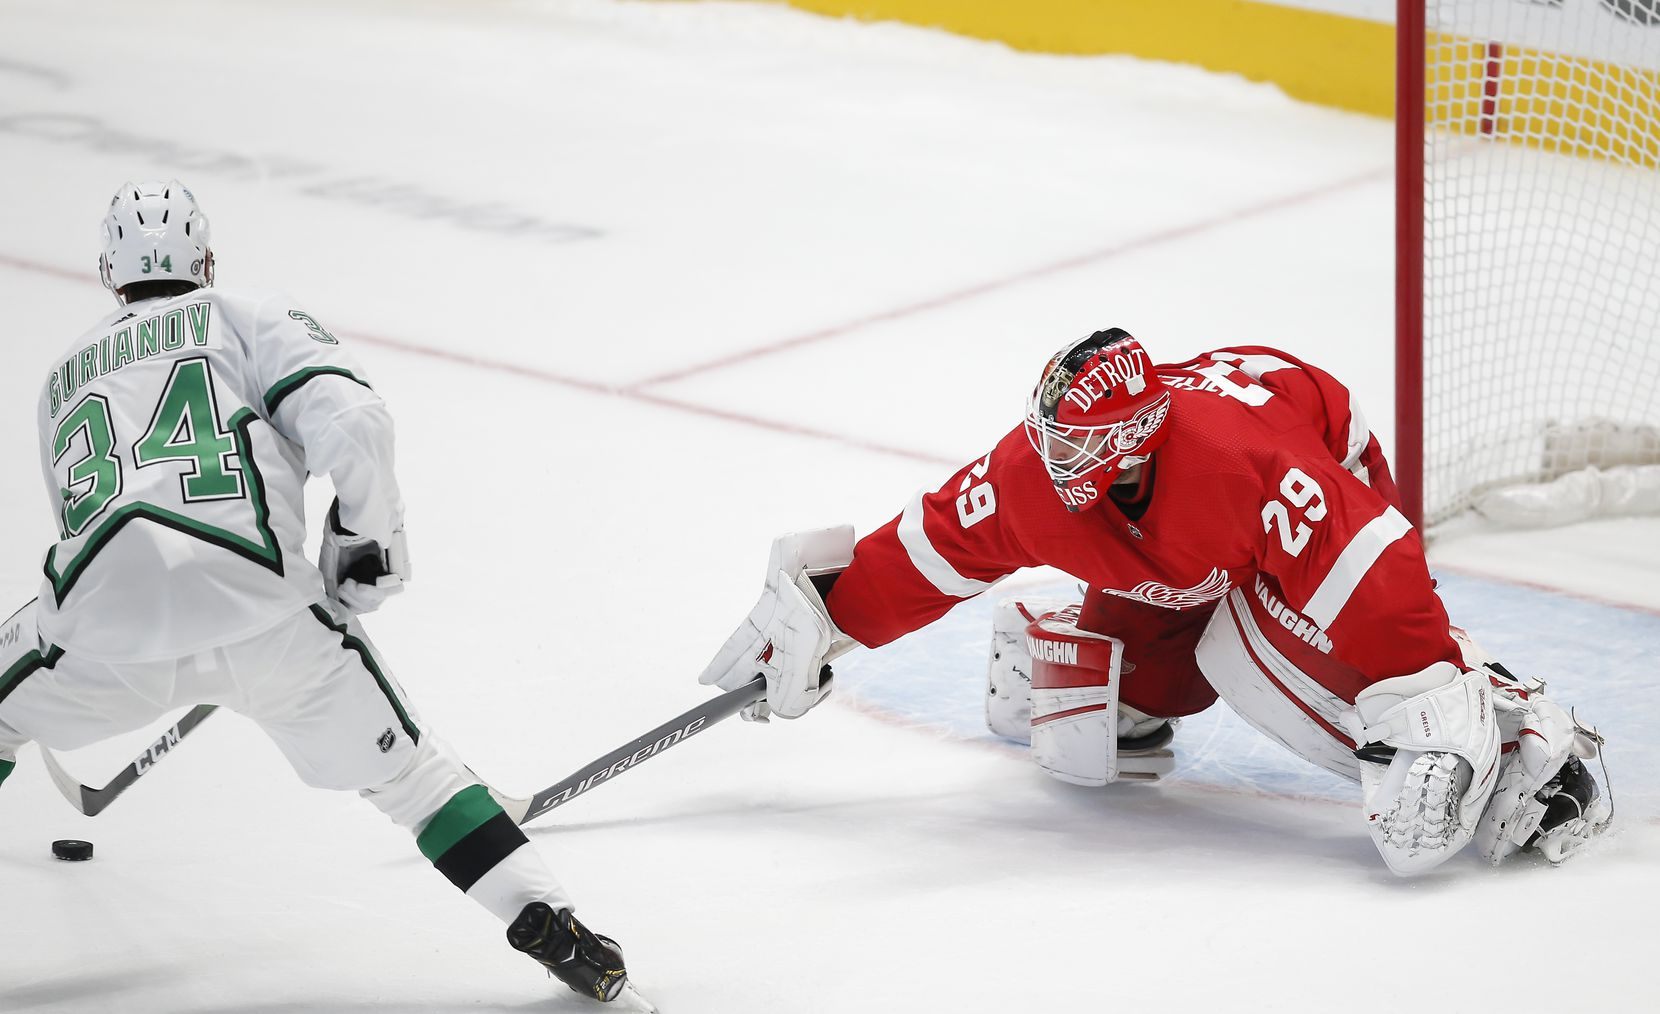 Dallas Stars forward Denis Gurianov (34) shoots the puck past Detroit Red Wings goaltender Thomas Greiss (29) in a shootout of an NHL hockey game in Dallas, Monday, April 19, 2021. Dallas won 3-2 in a shootout. (Brandon Wade/Special Contributor)